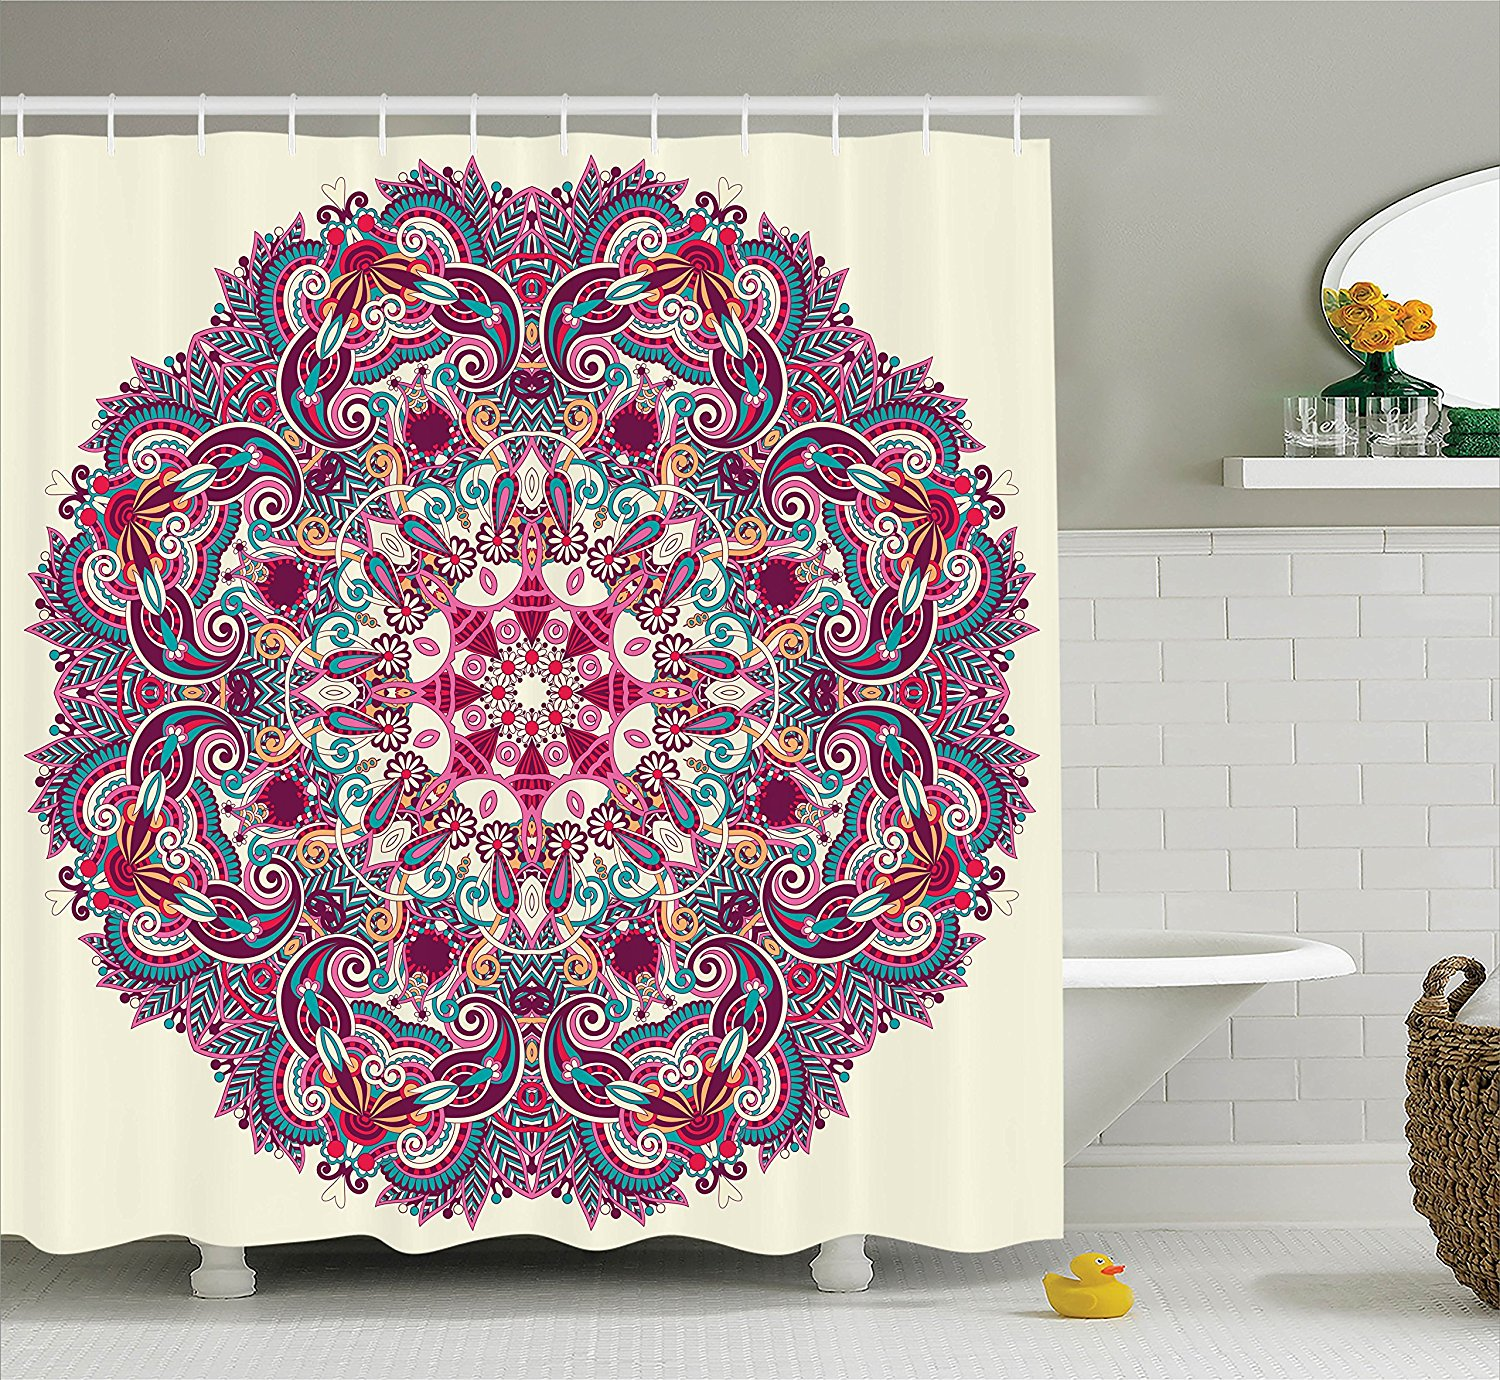 Charmhom flower and leaves bohemian theme indian ethnic design art polyester fabric bathroom shower curtain set